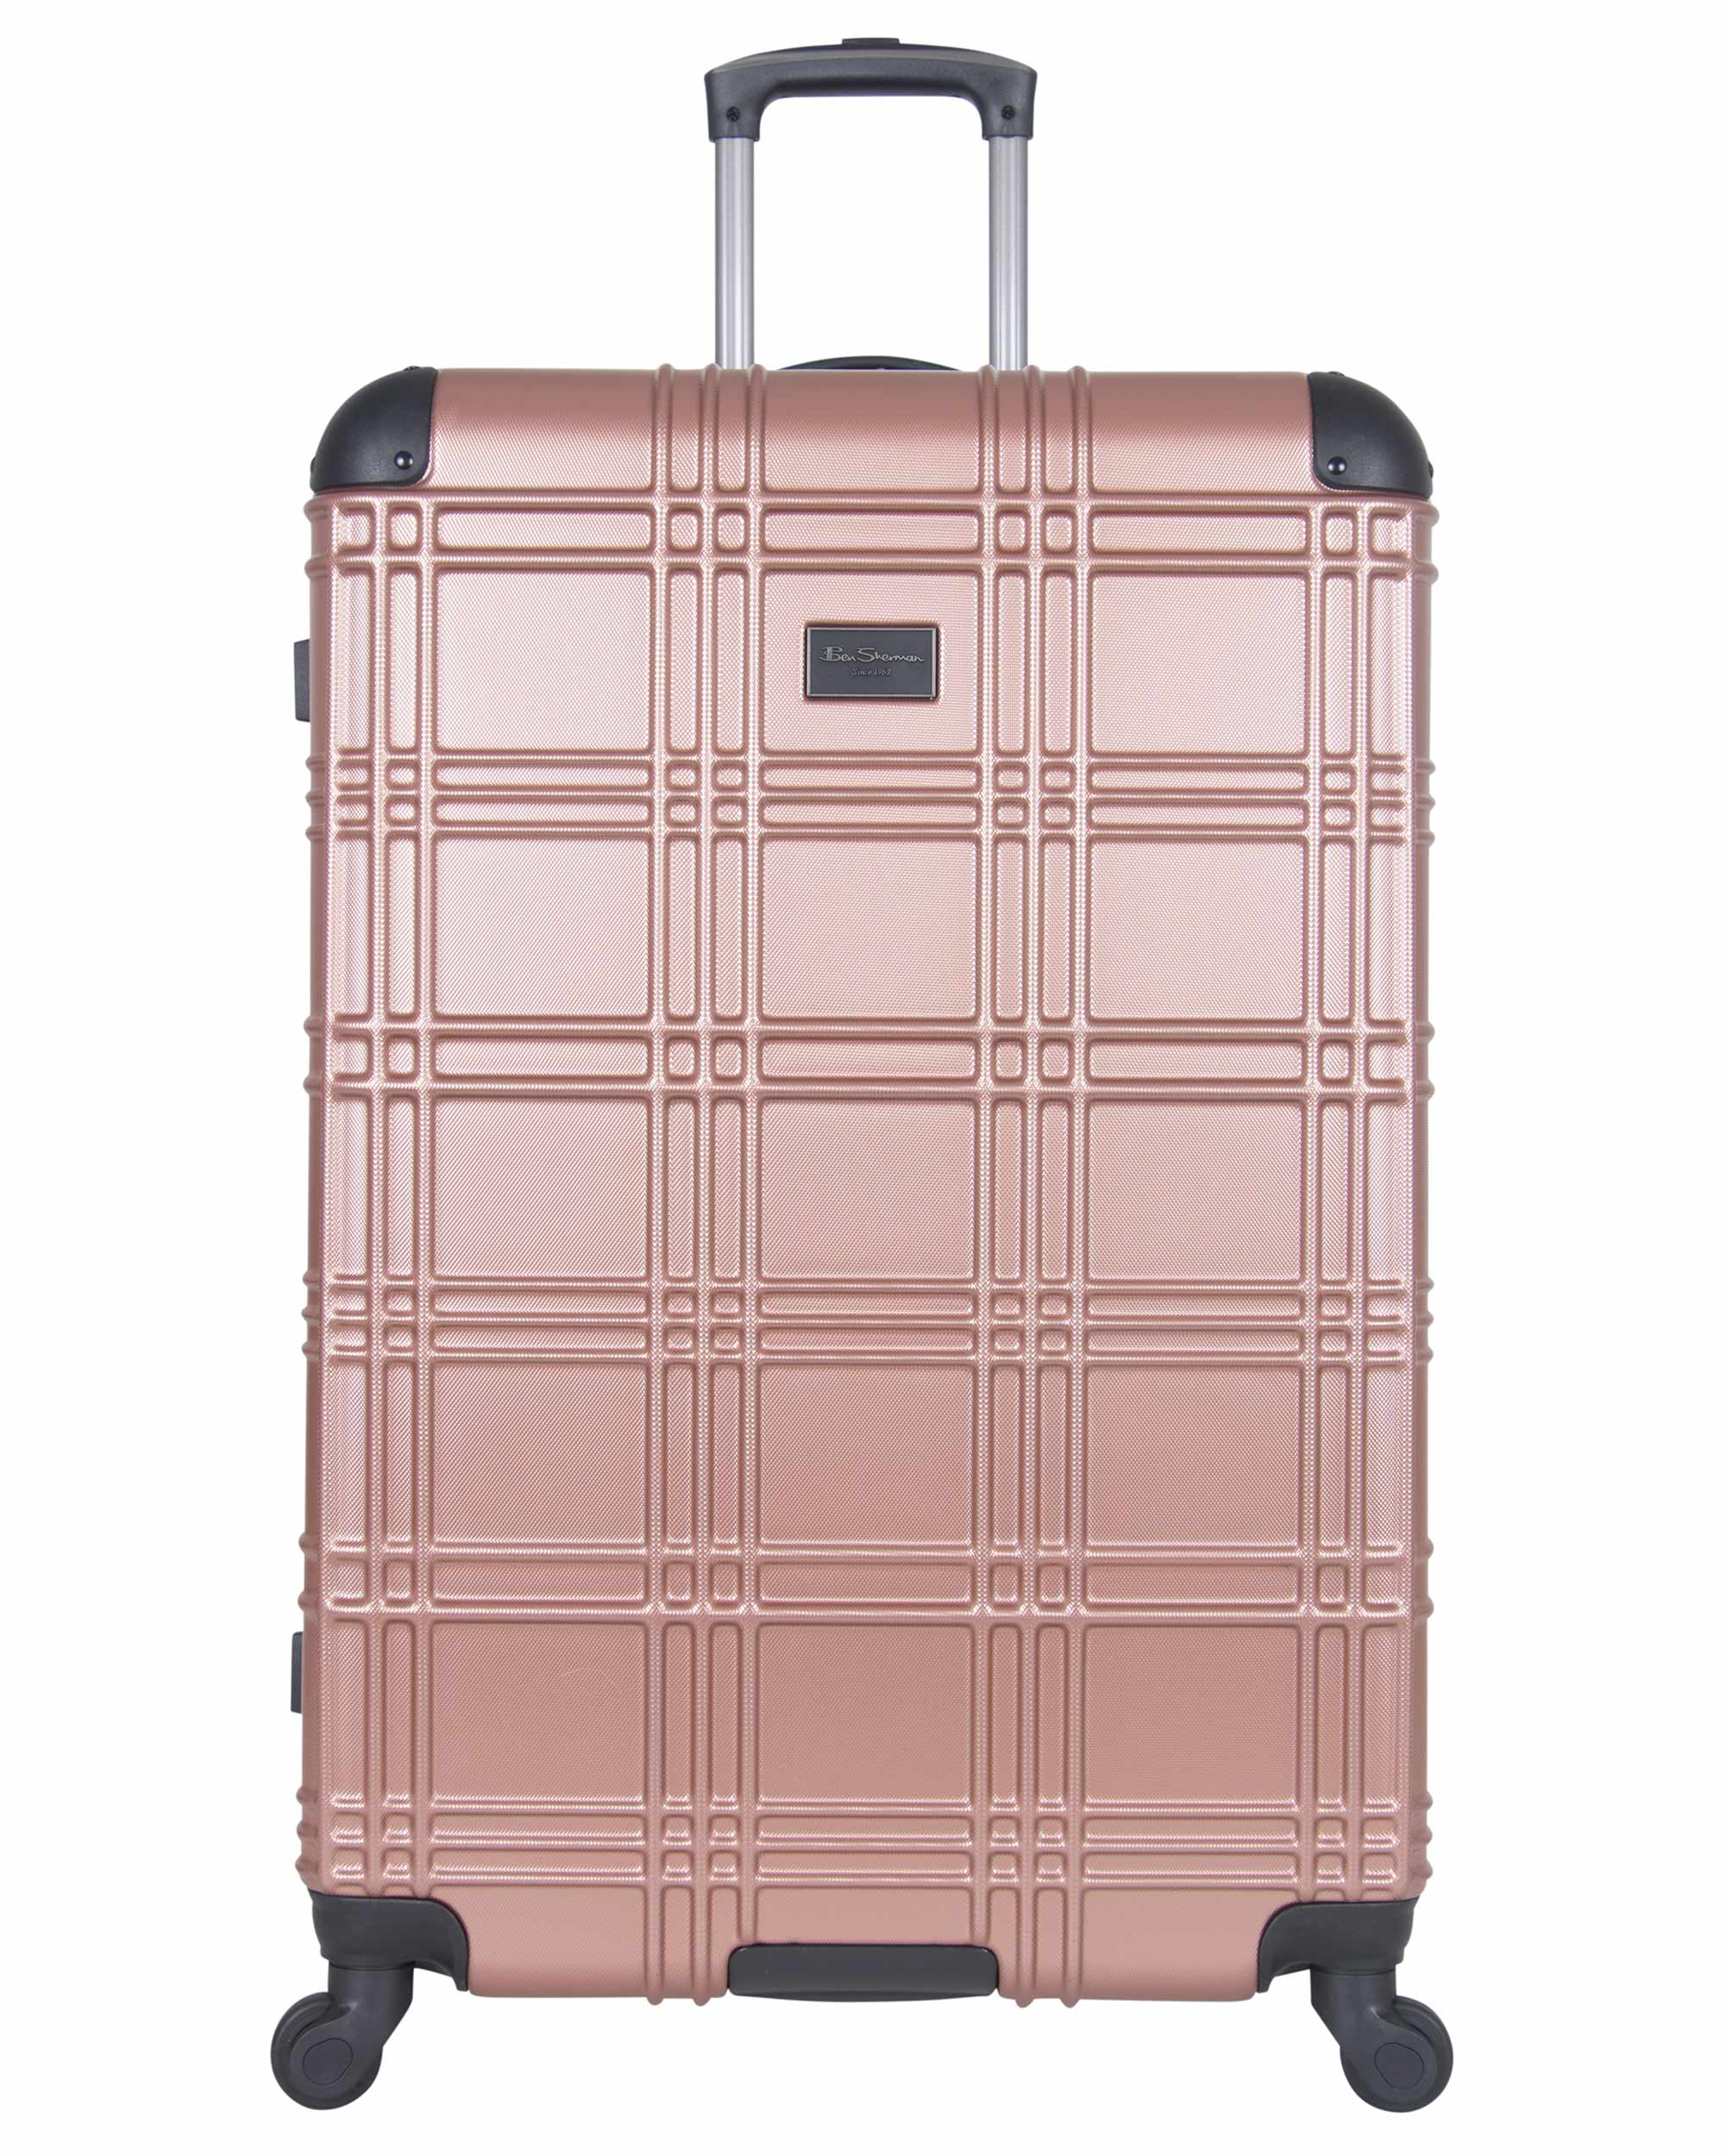 "Nottingham 28"" Embossed Hardside Checked Luggage - Rose Gold"